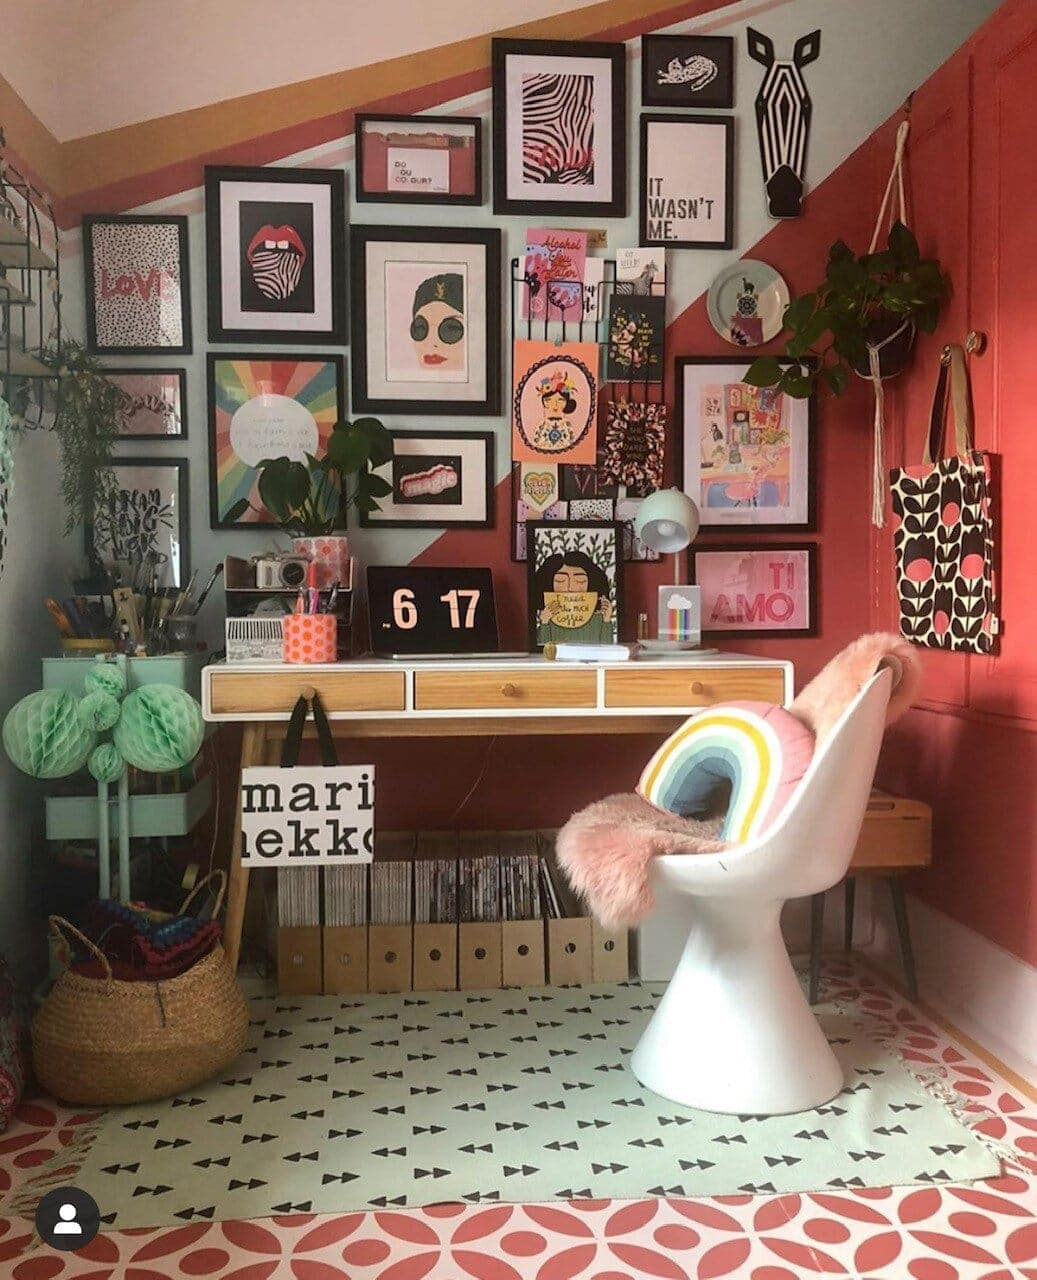 This office corner is a masterclass in eclectic colourfulness! Instagram: @soozidanson